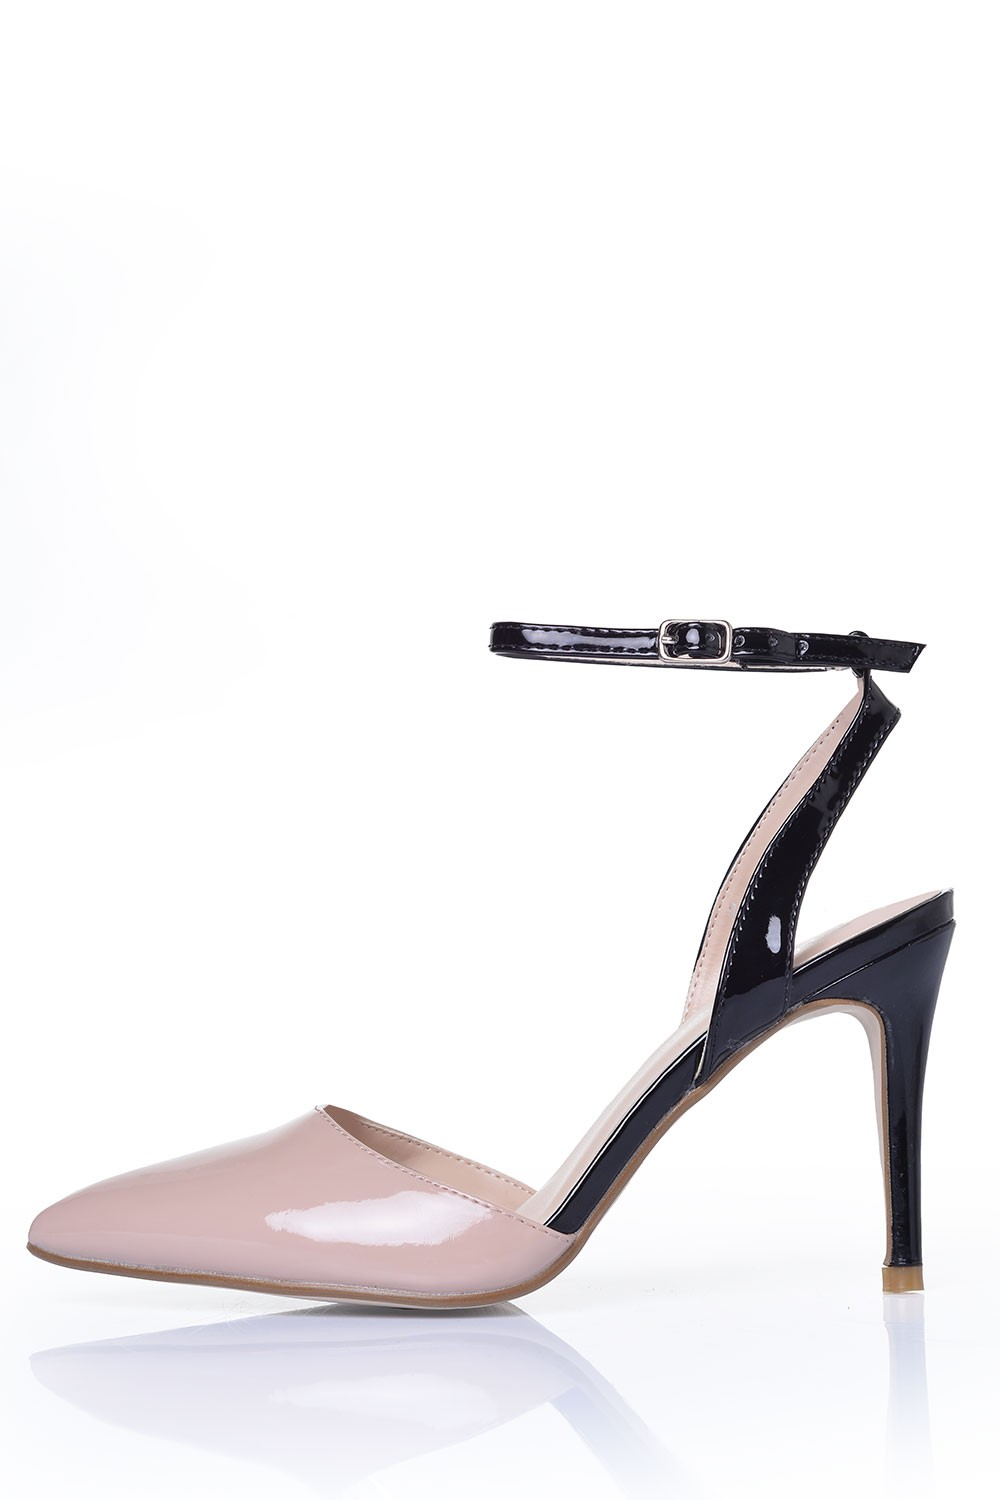 Roxy Sling Back Heels in Nude and Black